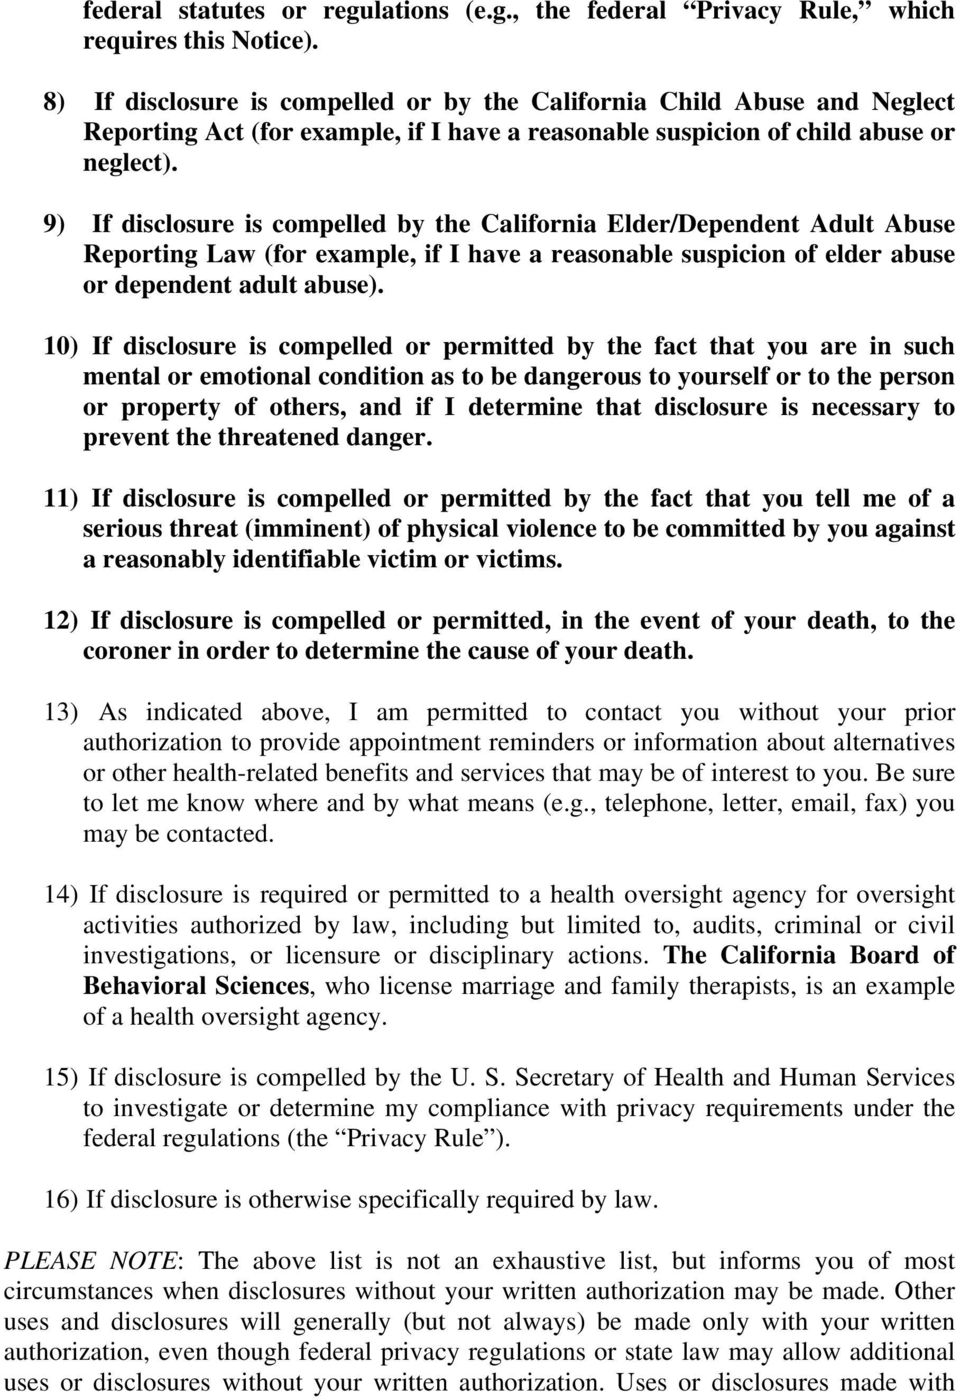 9) If disclosure is compelled by the California Elder/Dependent Adult Abuse Reporting Law (for example, if I have a reasonable suspicion of elder abuse or dependent adult abuse).